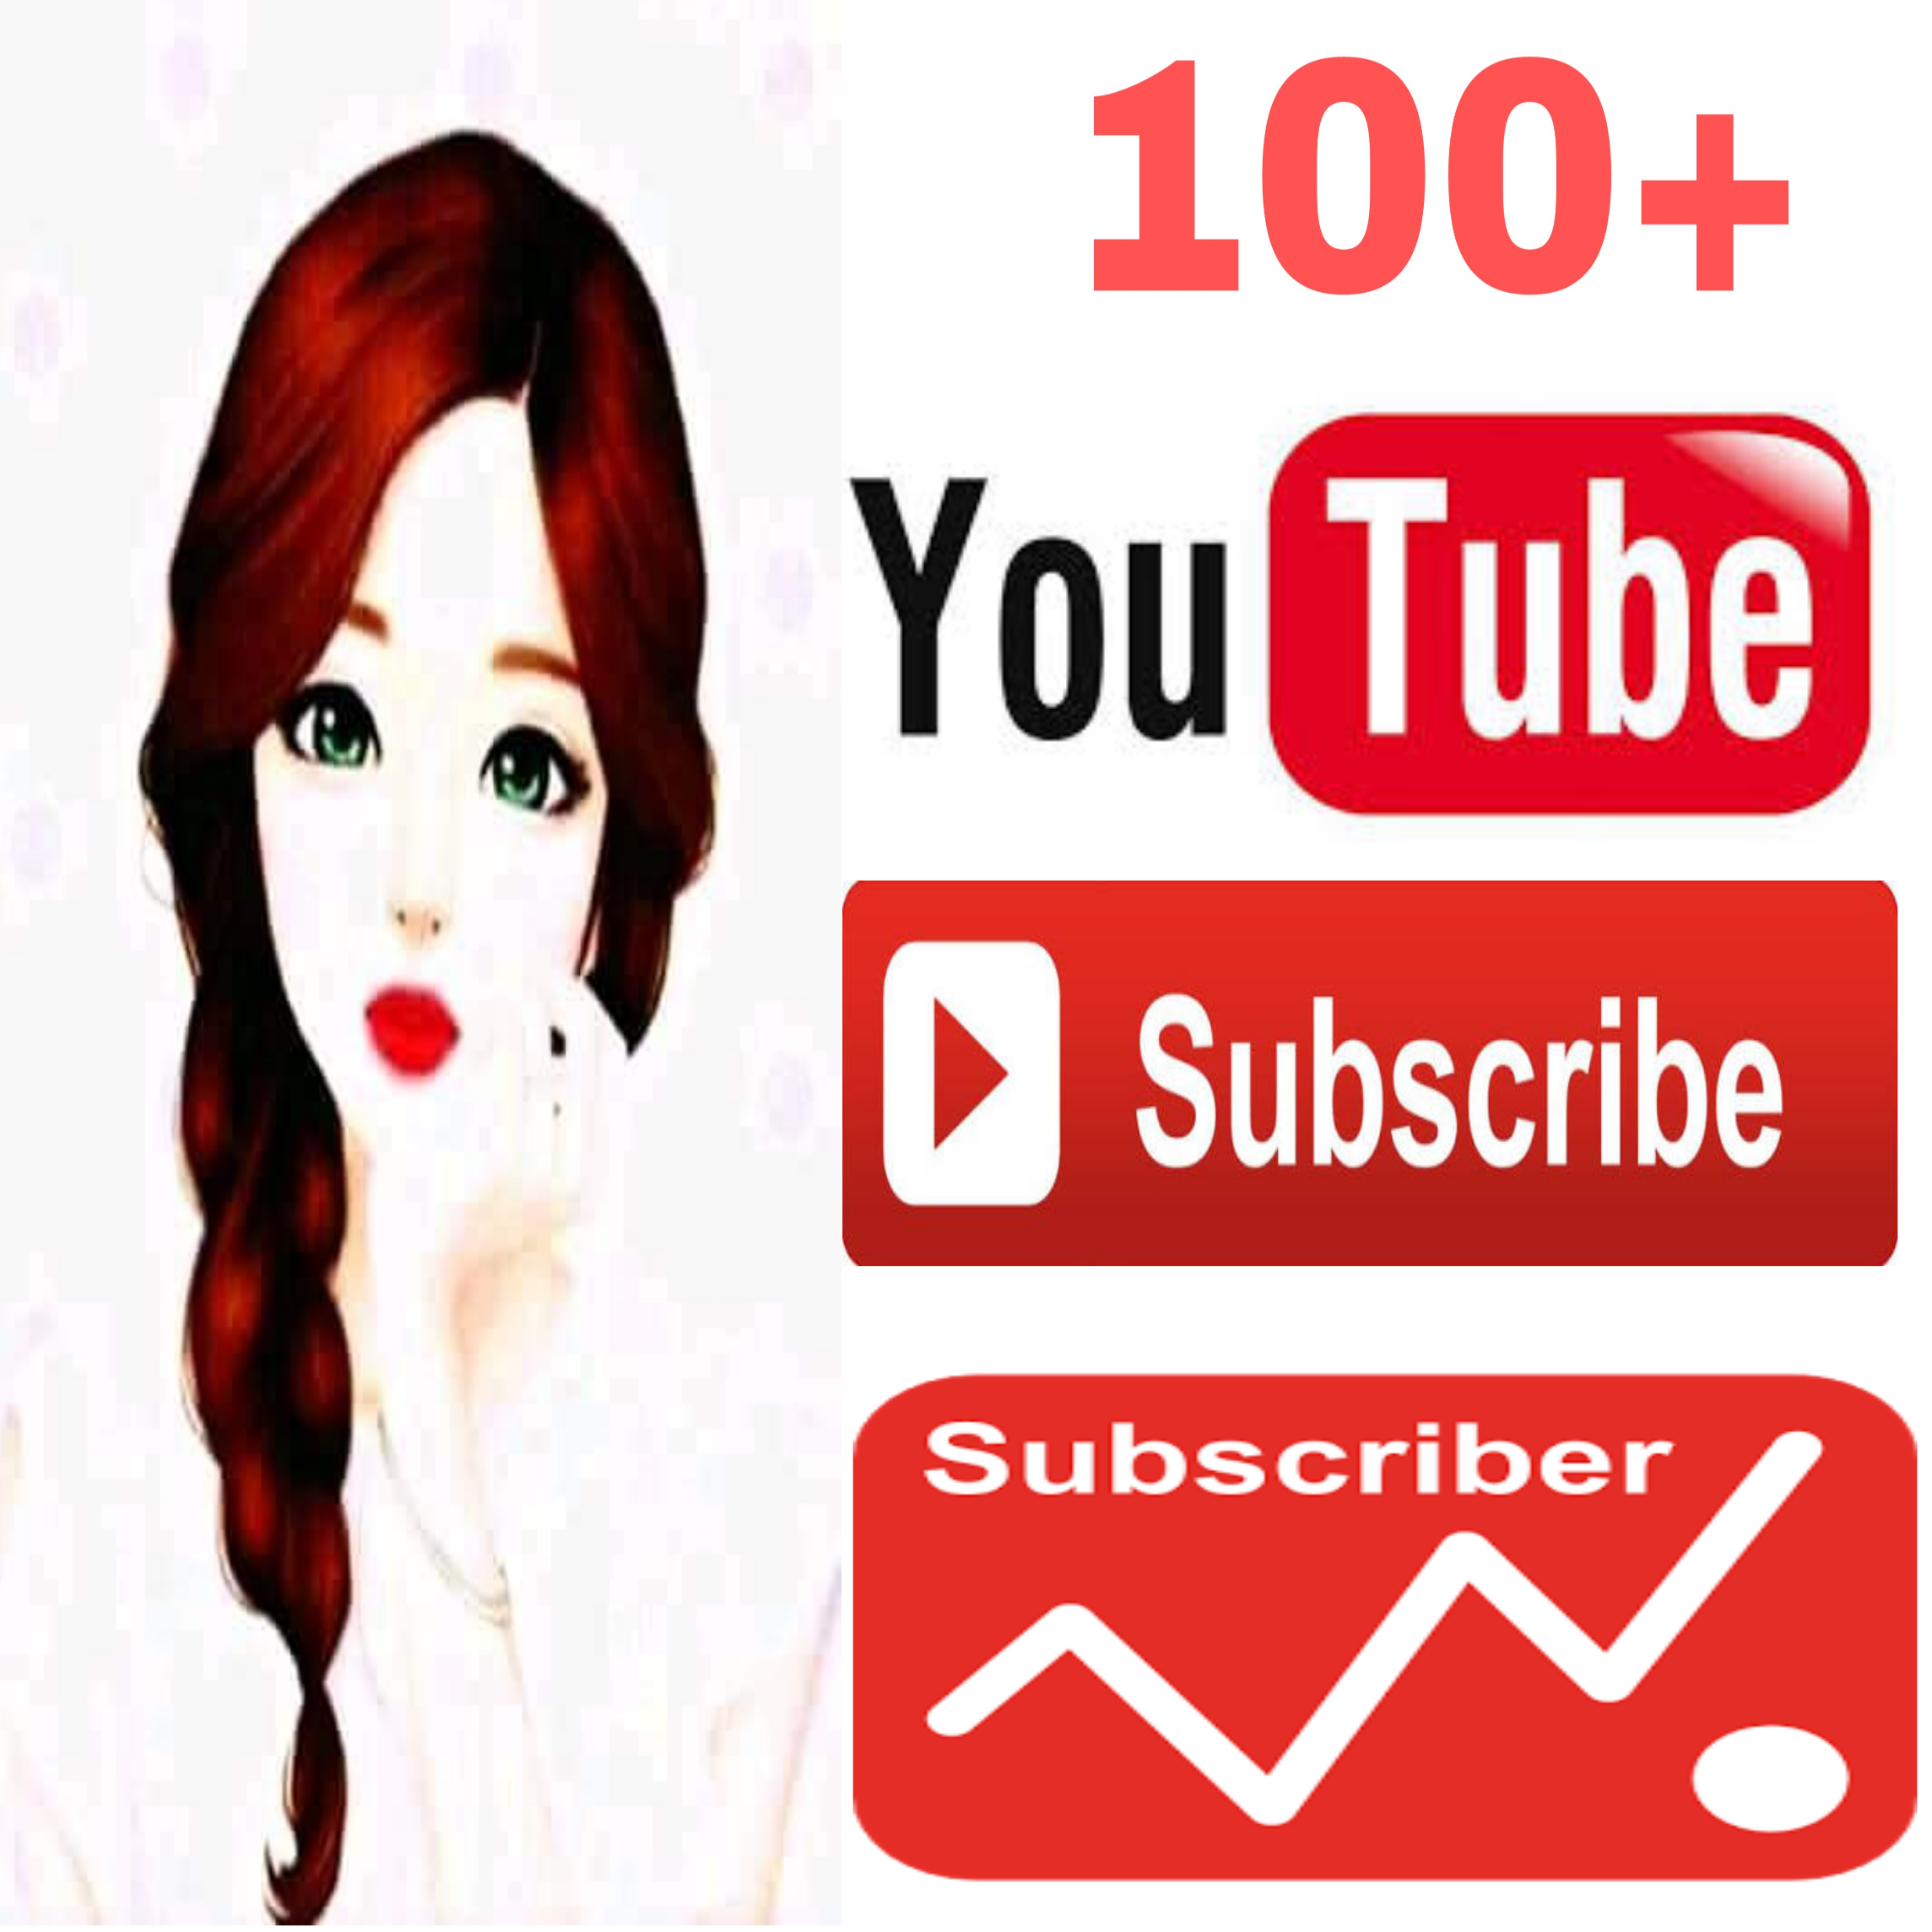 Always active real 100+ channel subscriber non drop guarantee very fast in 2-2 hours